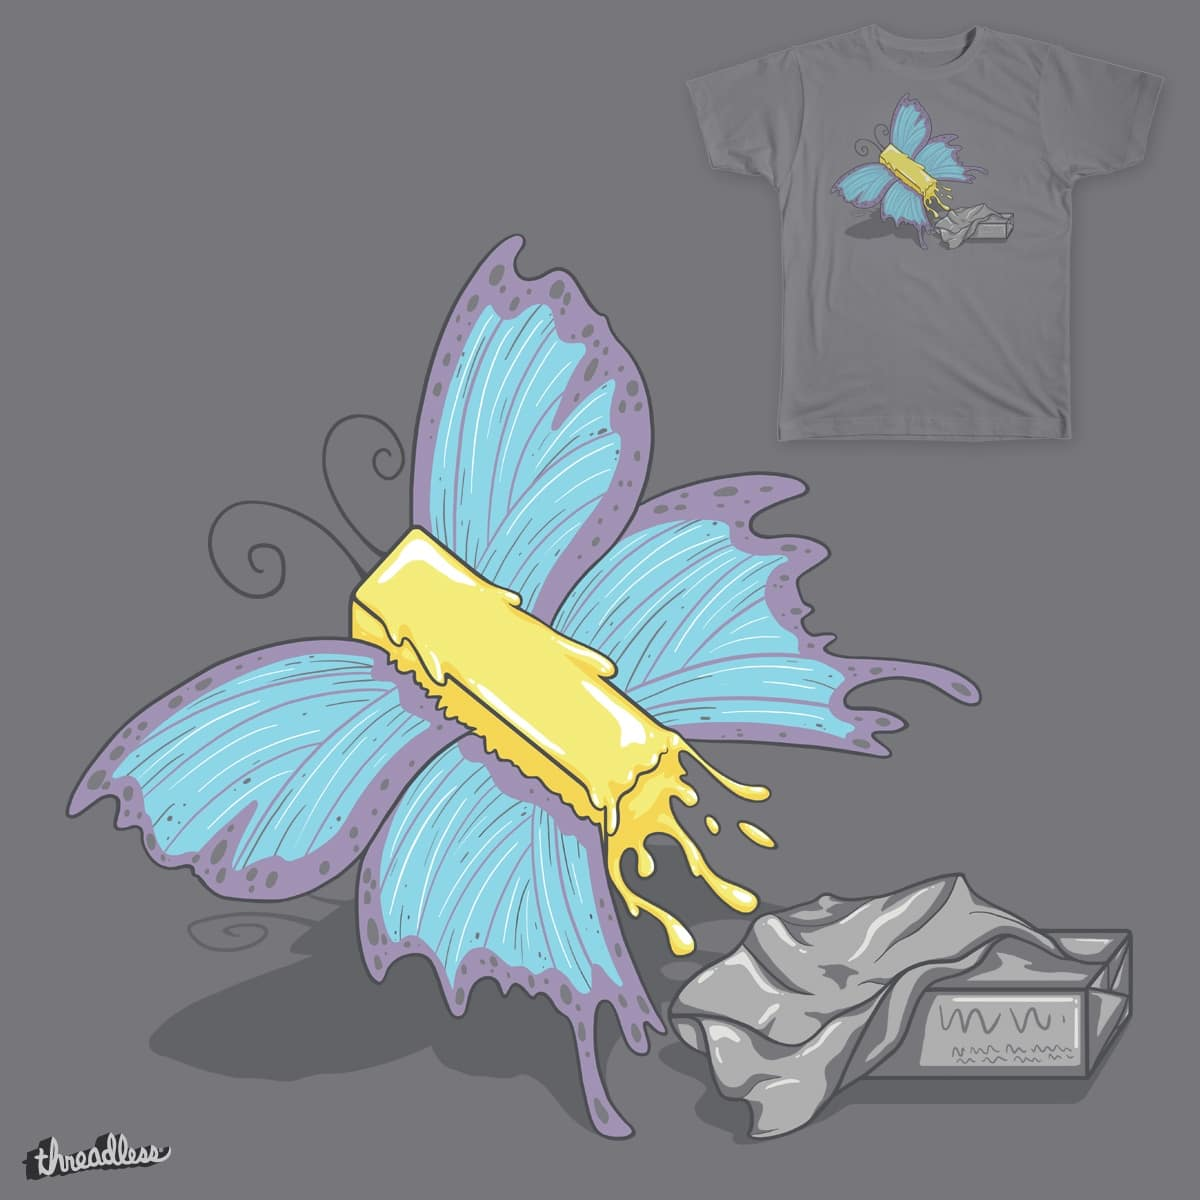 Butterfly by spookylili on Threadless